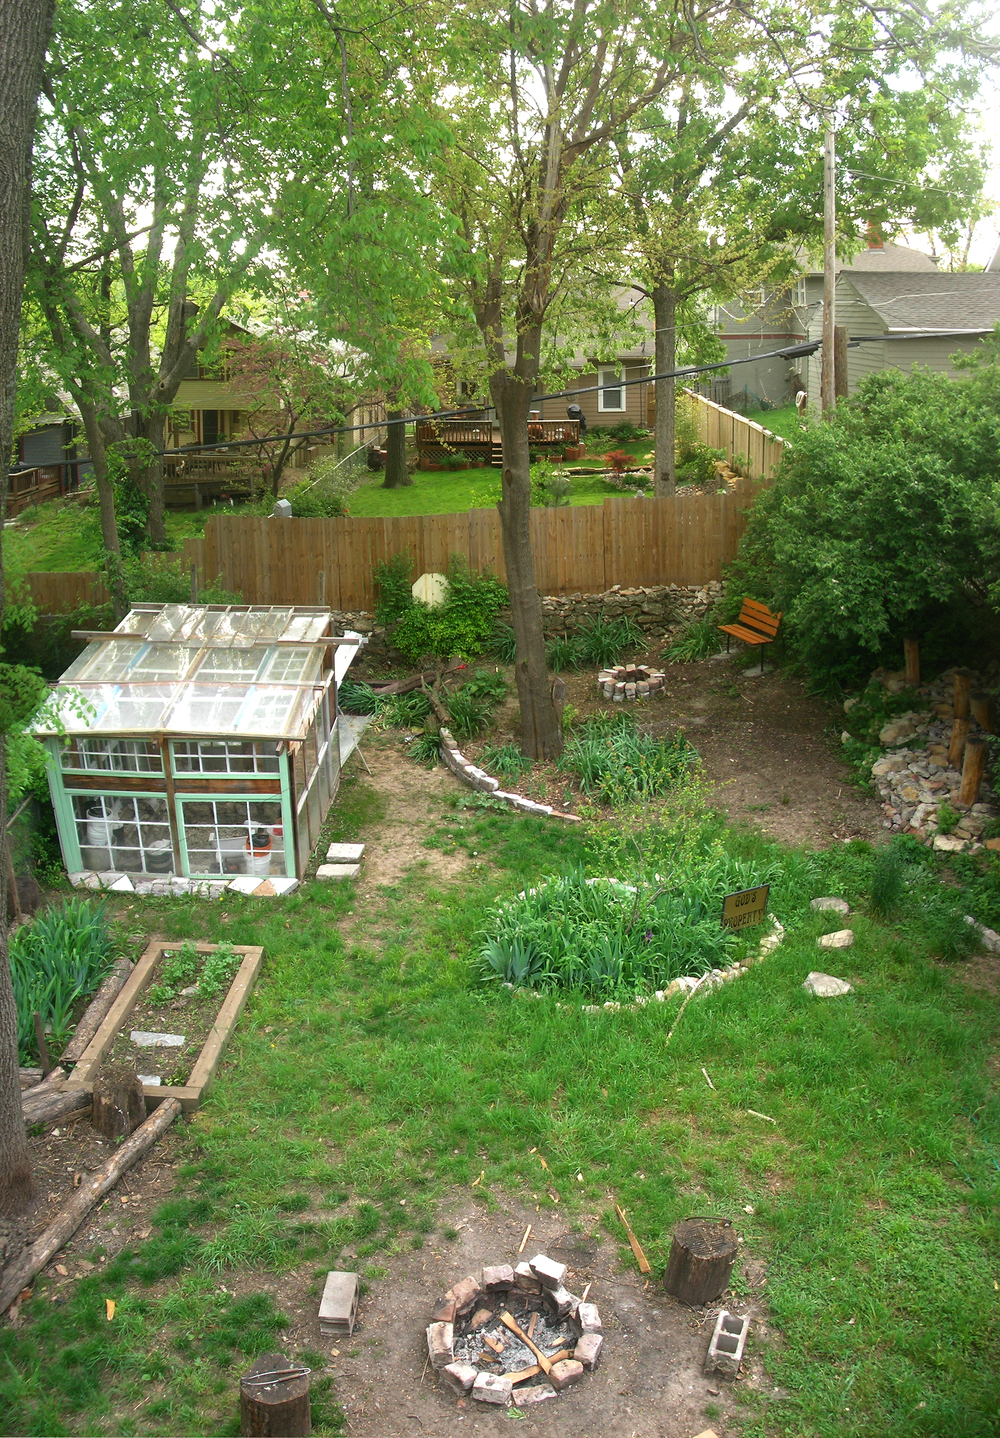 Greenhouse and landscaping from Kansas City bungalow remodel.